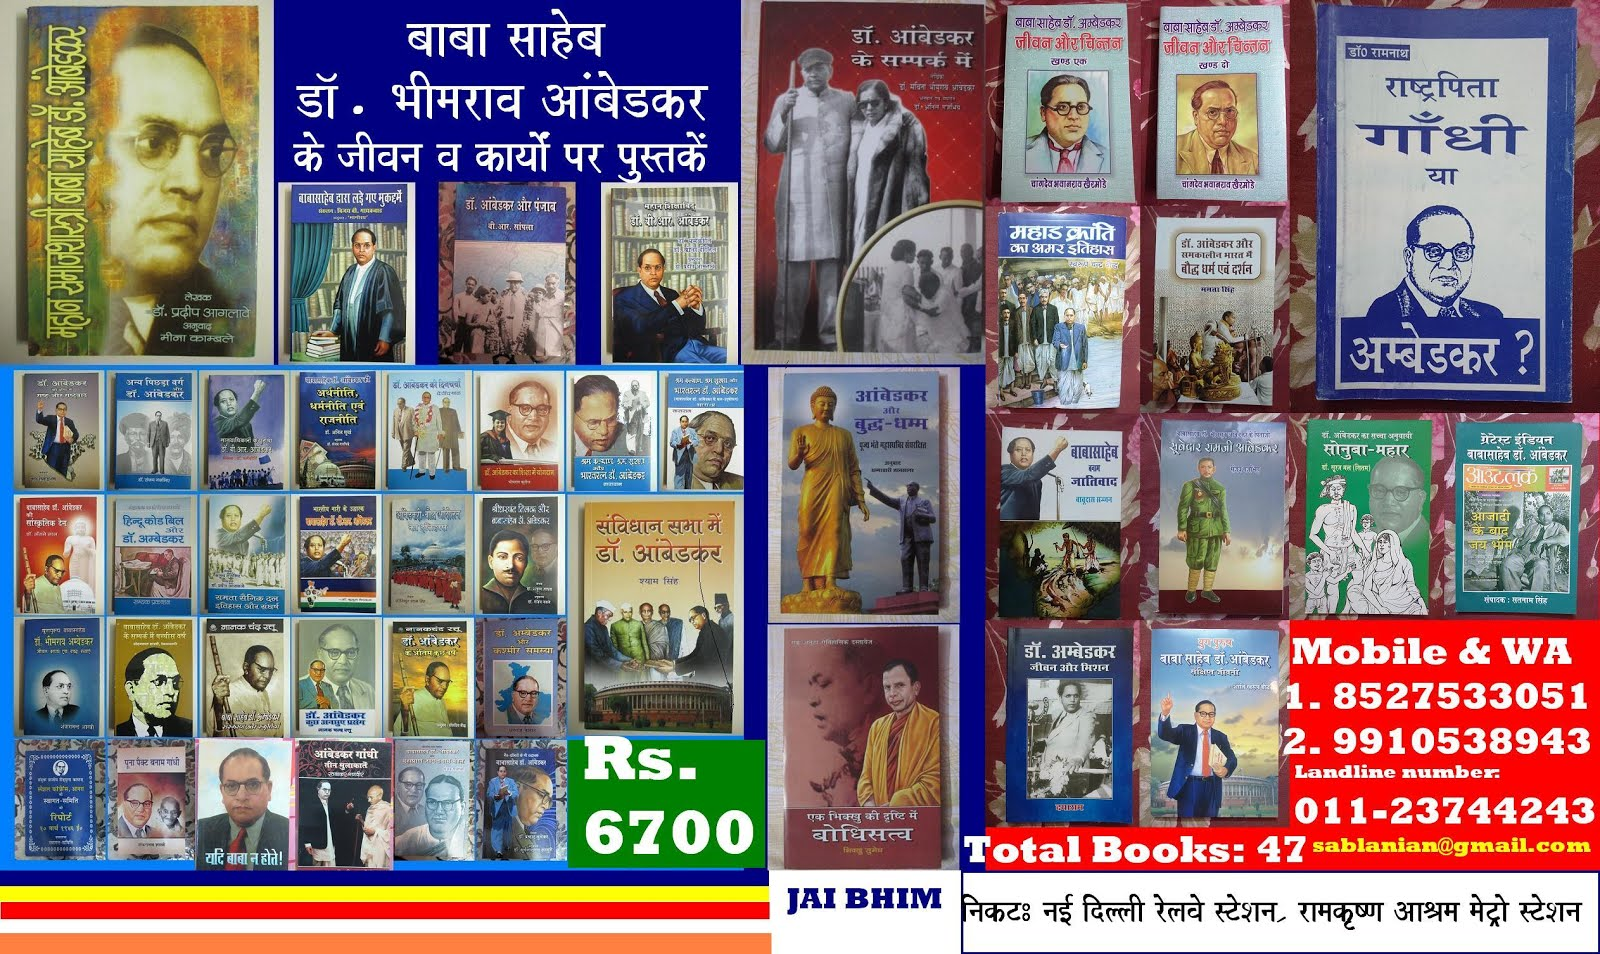 Hindi Books on Work & Life of Dr. Ambedkar